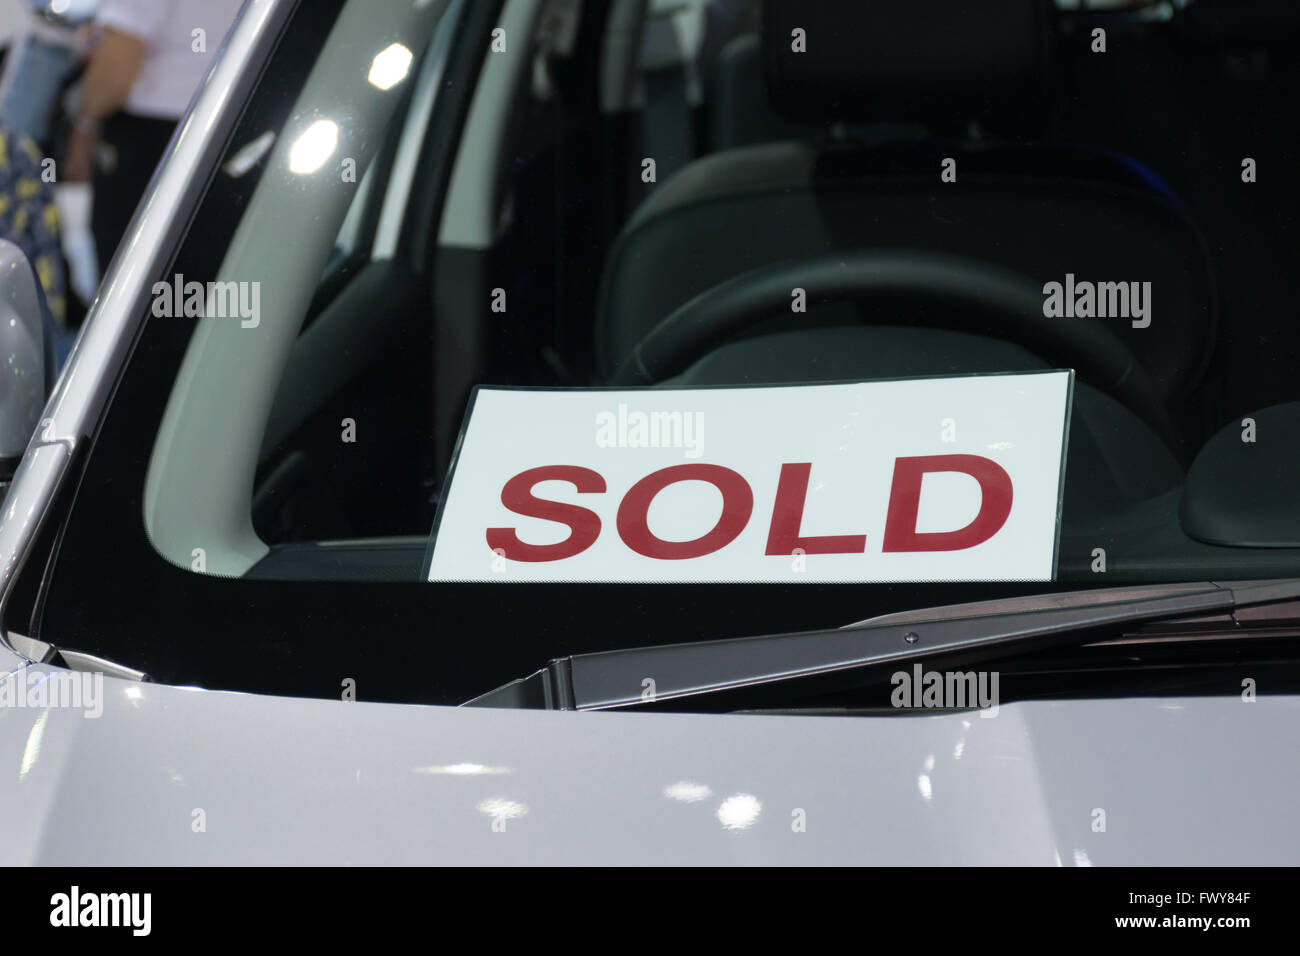 Sold label in the new car at car showroom Stock Photo